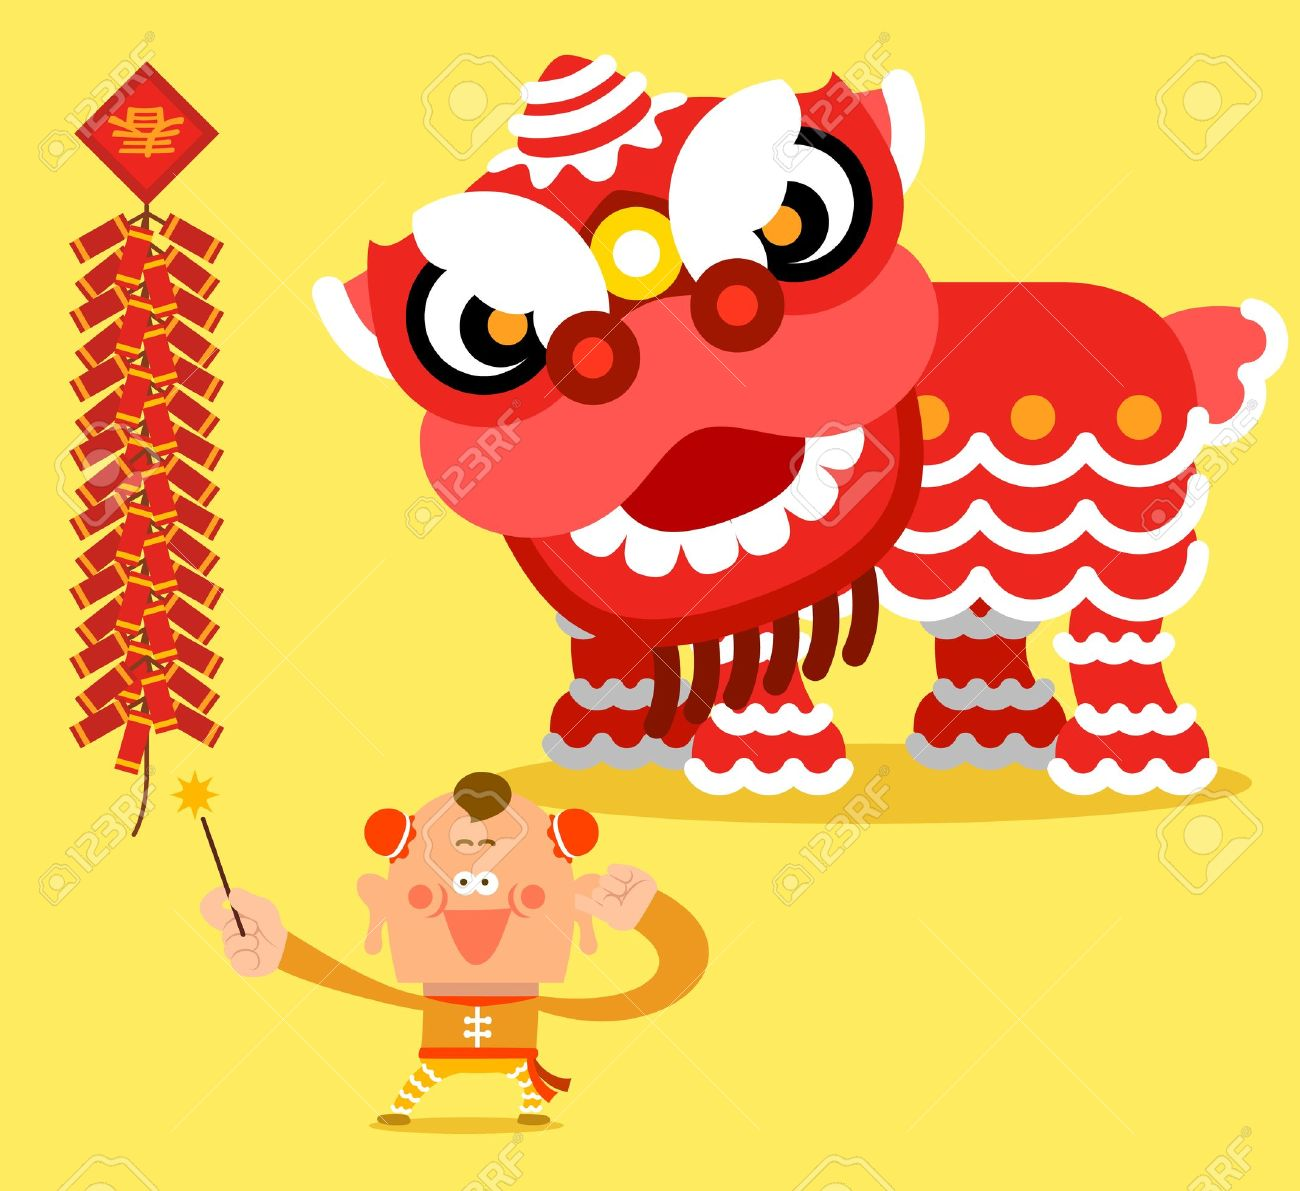 Asians clipart chinese dragon parade Lion lion dance  new